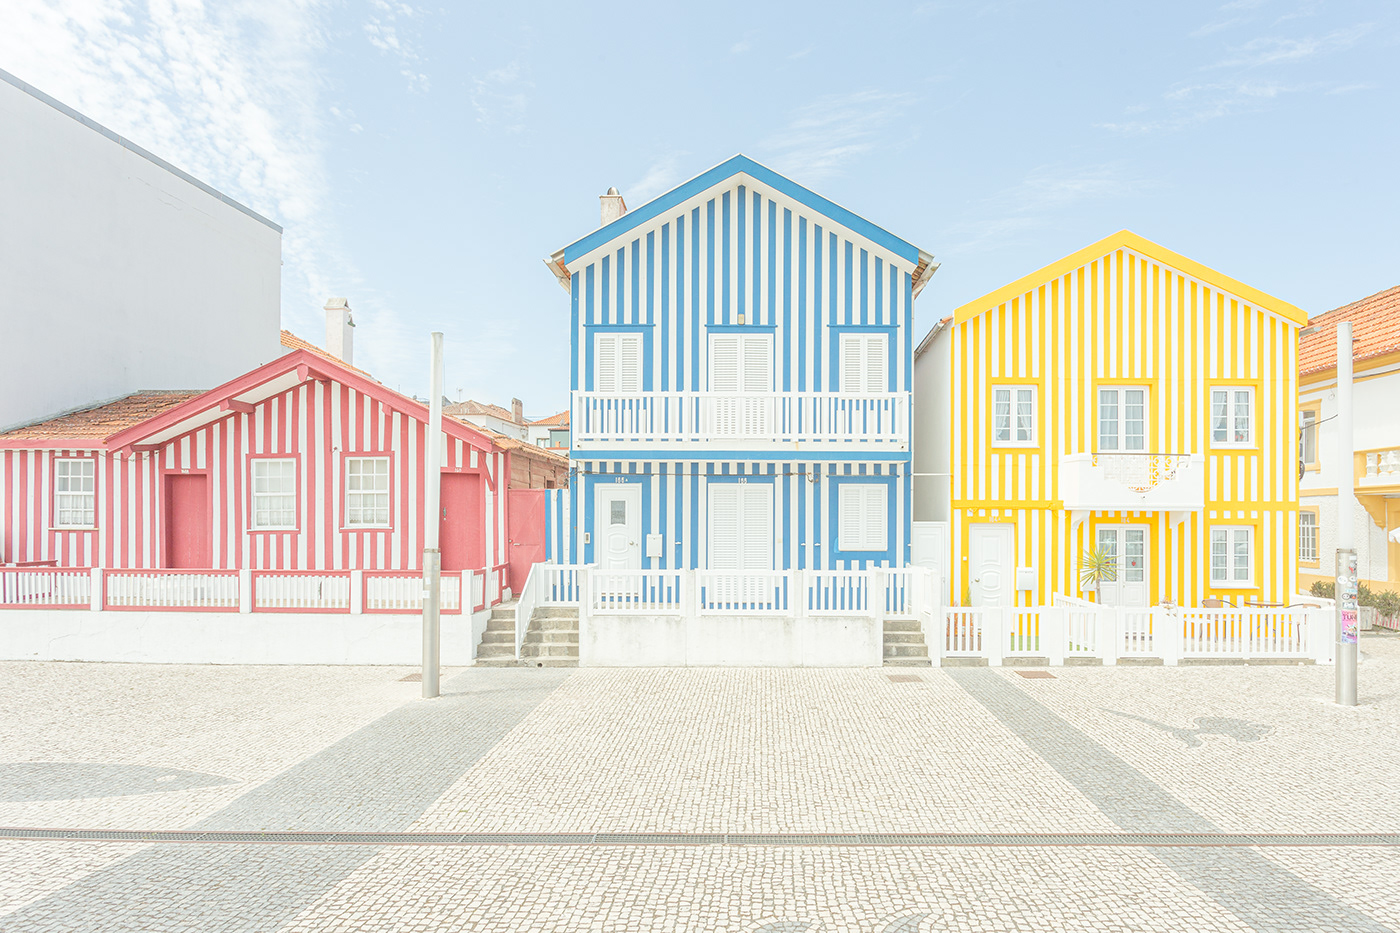 Three houses in Costa Nova with different colors of stripes.